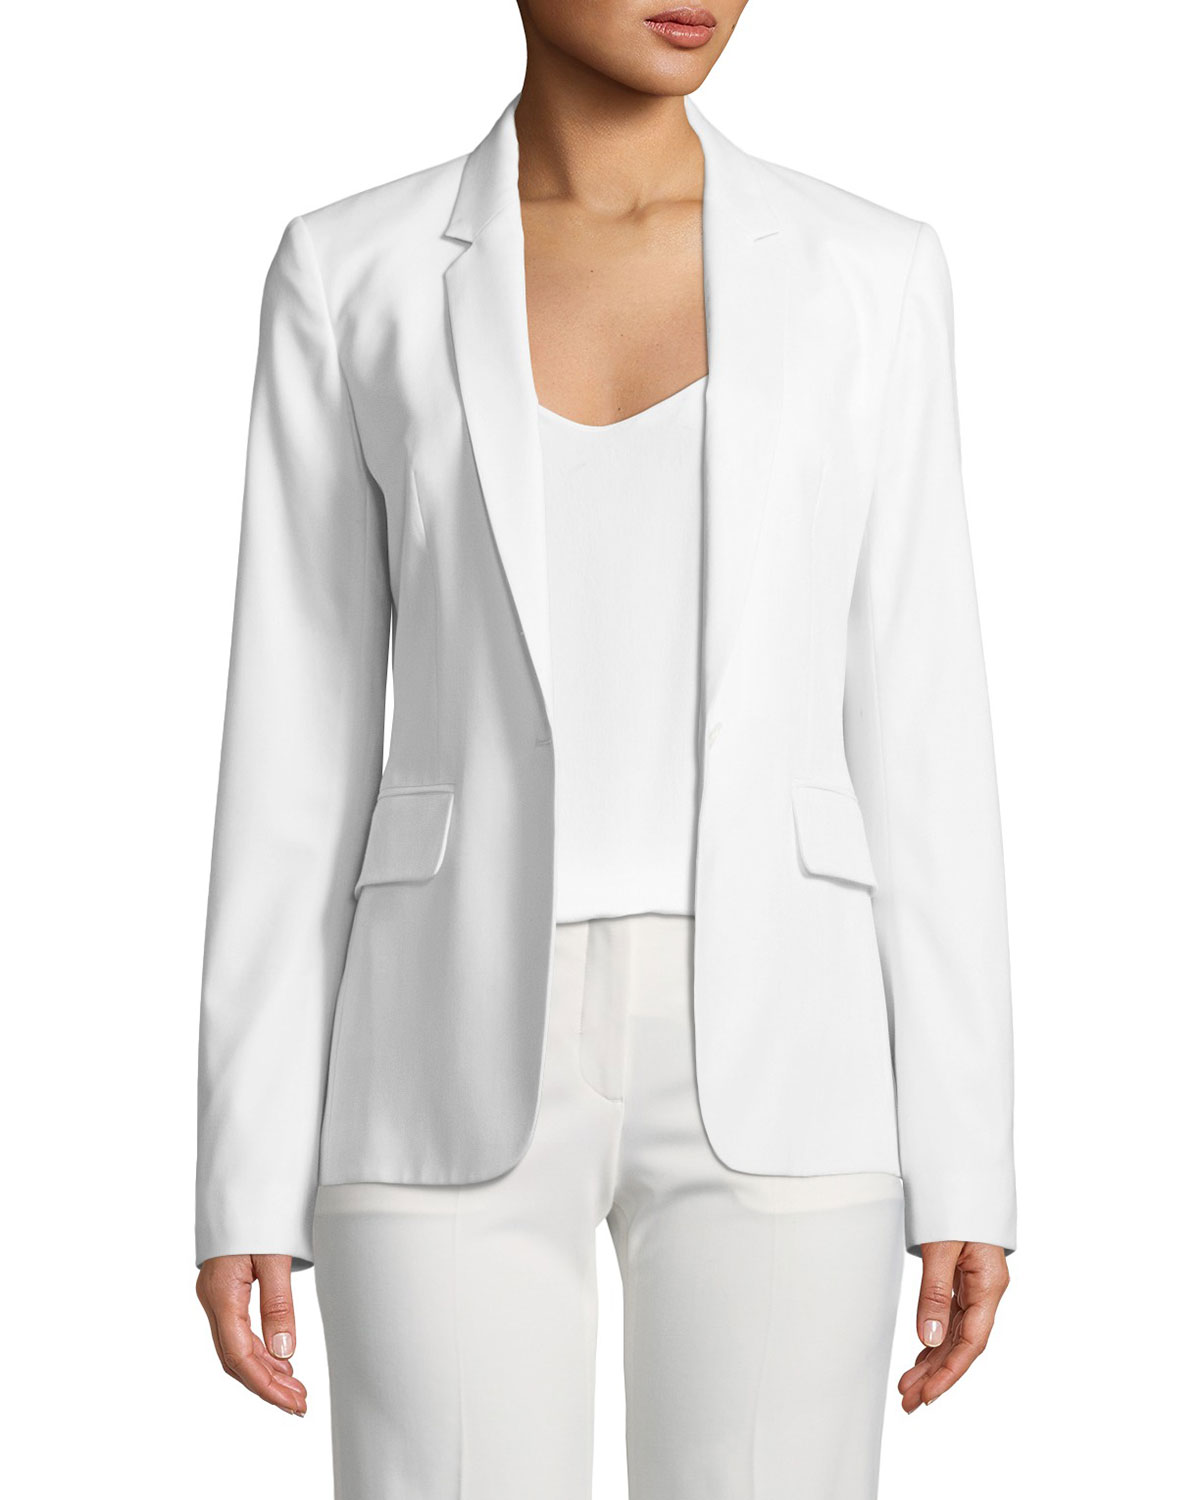 5f8df06f12 Theory Essential One-Button Polished Wool Jacket | Neiman Marcus